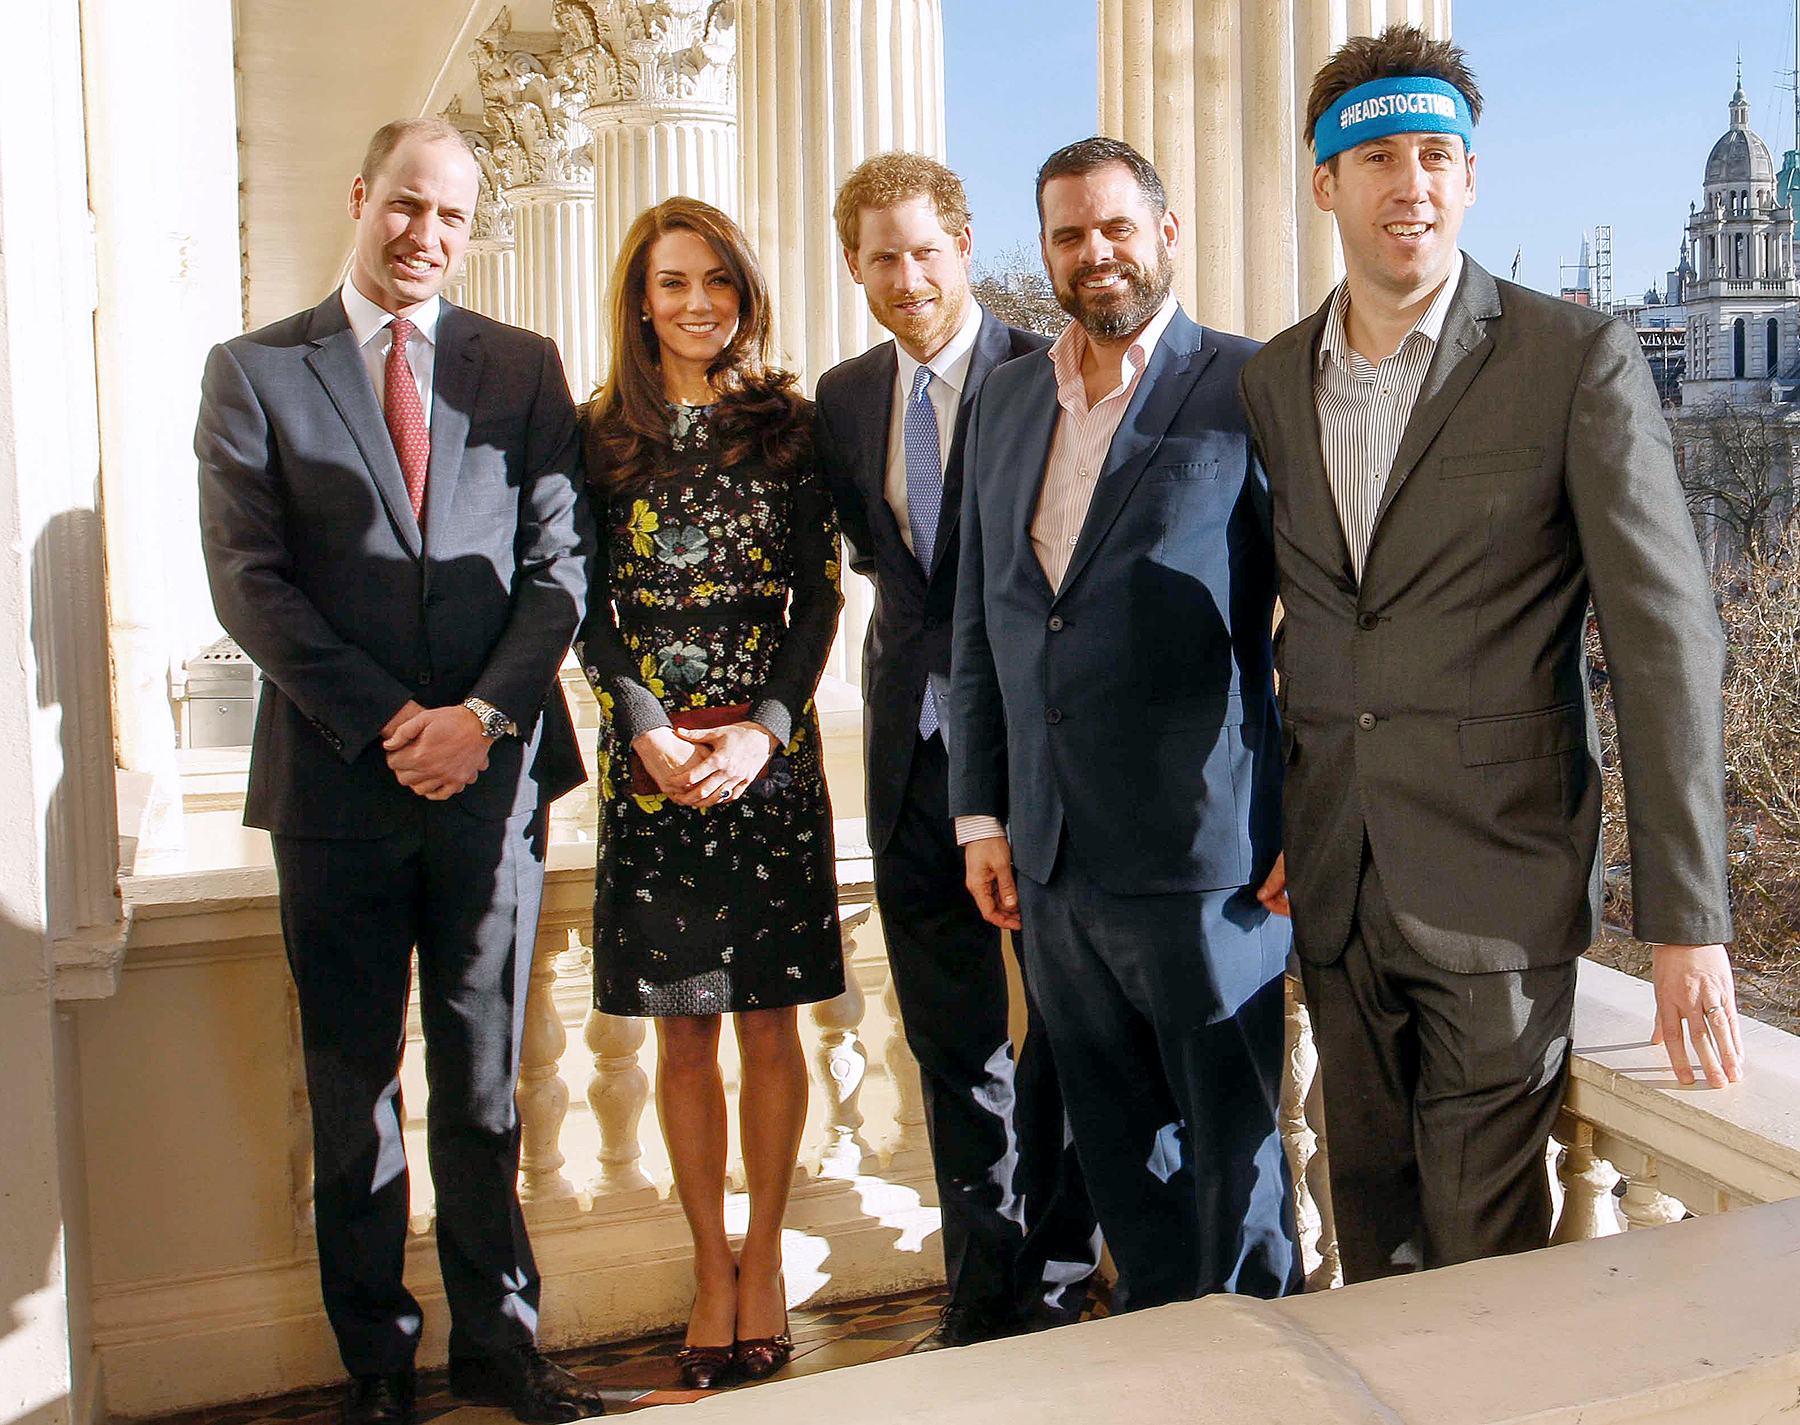 Prince William, Kate Middleton, Prince Harry, Steve Jackson and Jon Salmon